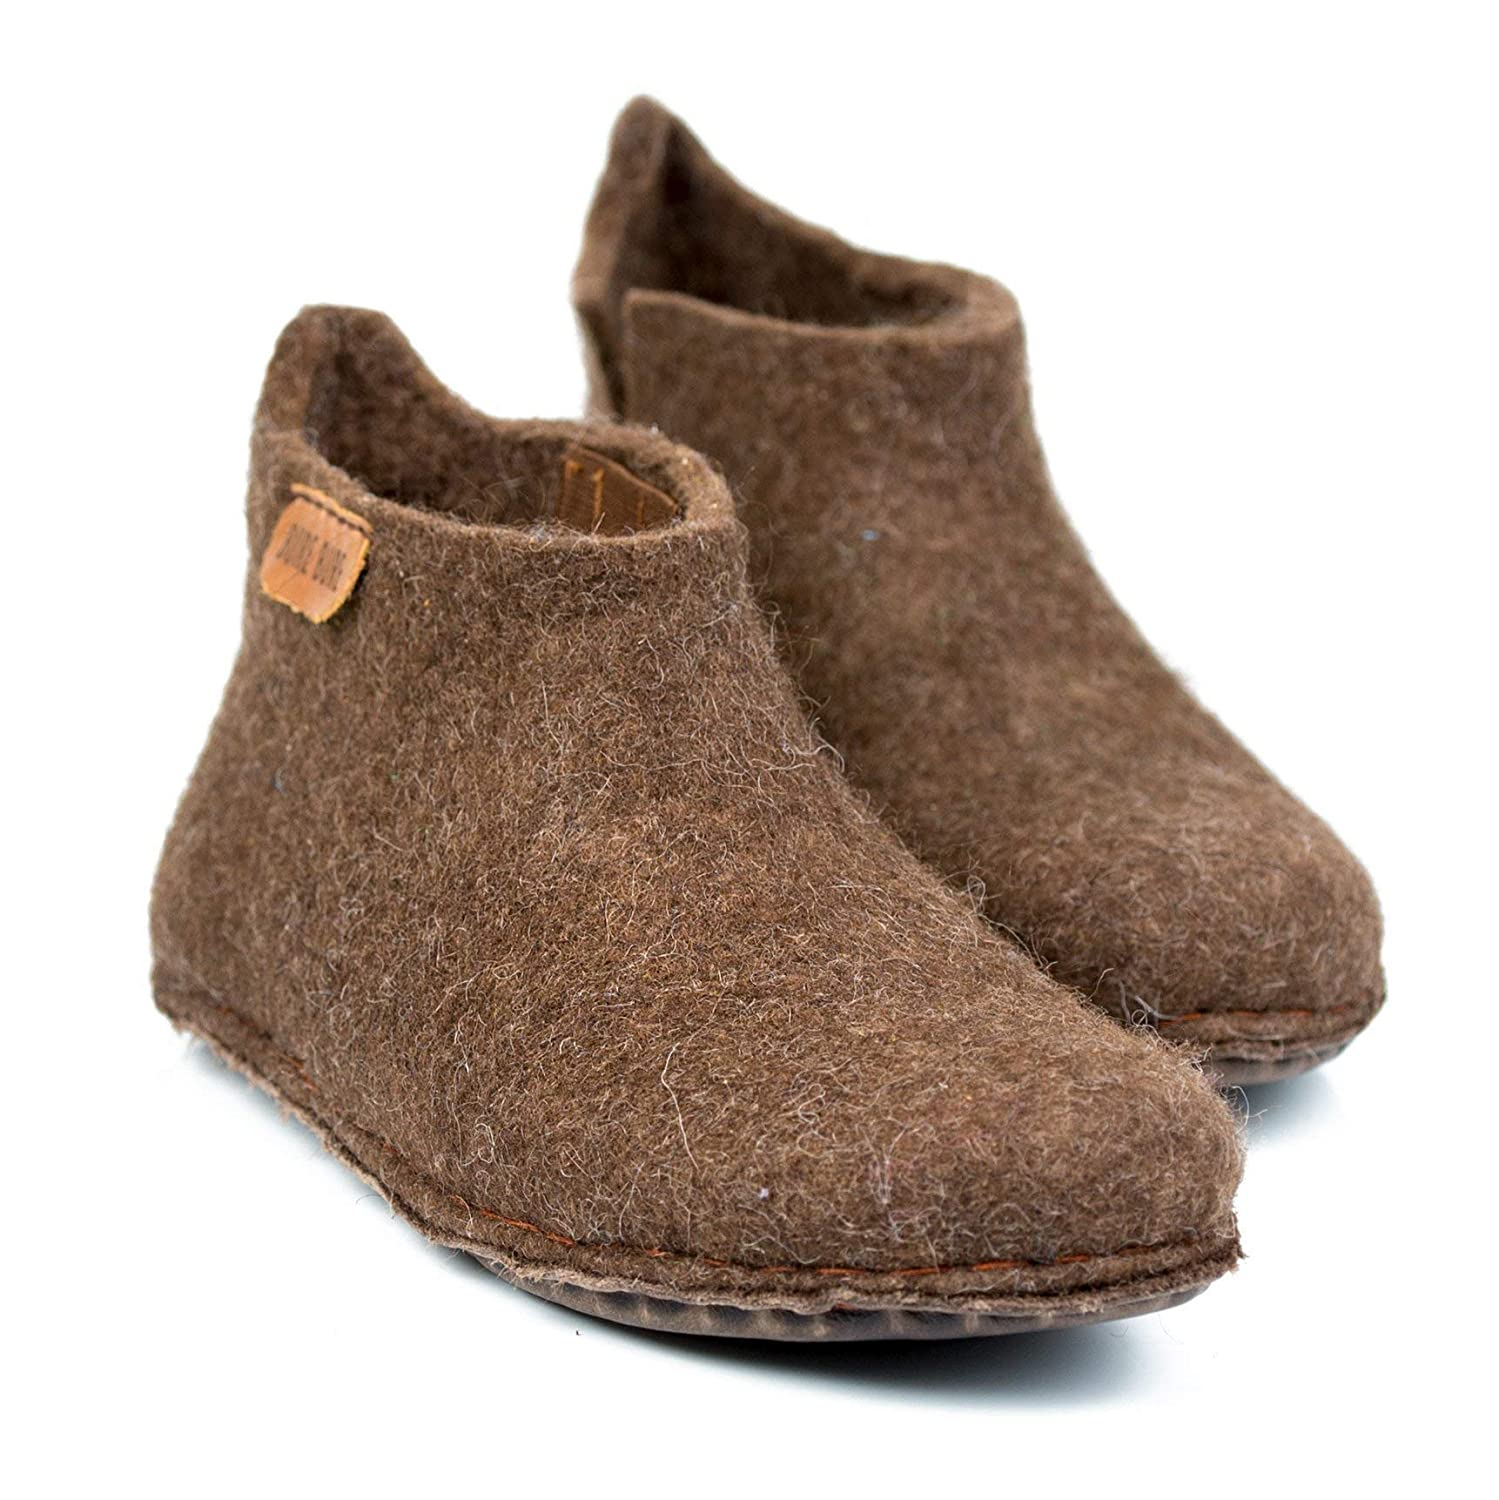 BureBure Classic Felted Wool Ankle Boots Slippers for Men Handmade in Europe